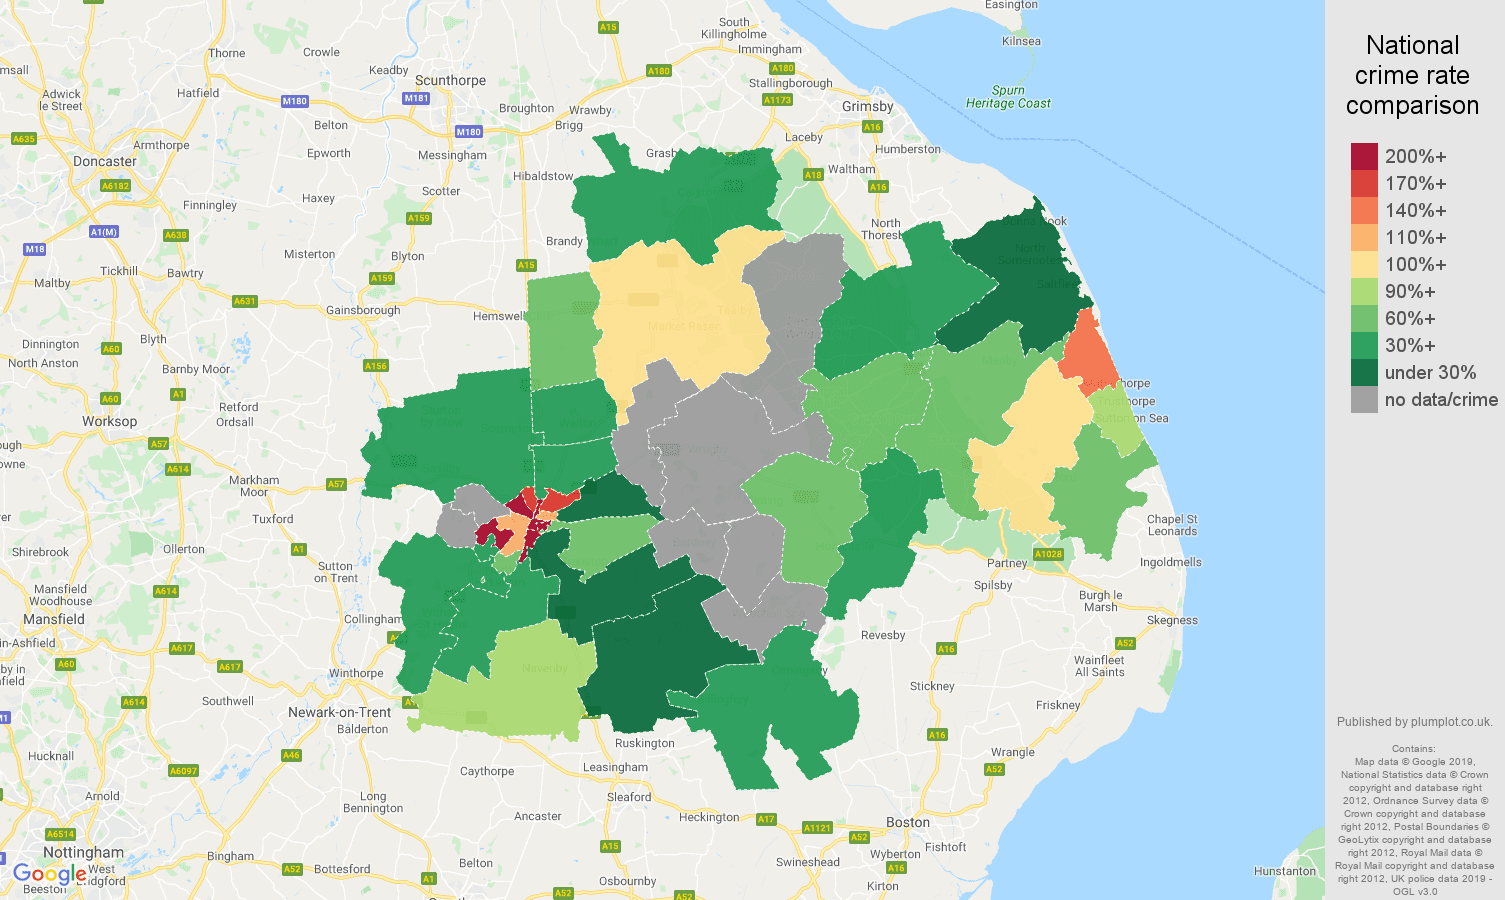 Lincoln possession of weapons crime rate comparison map